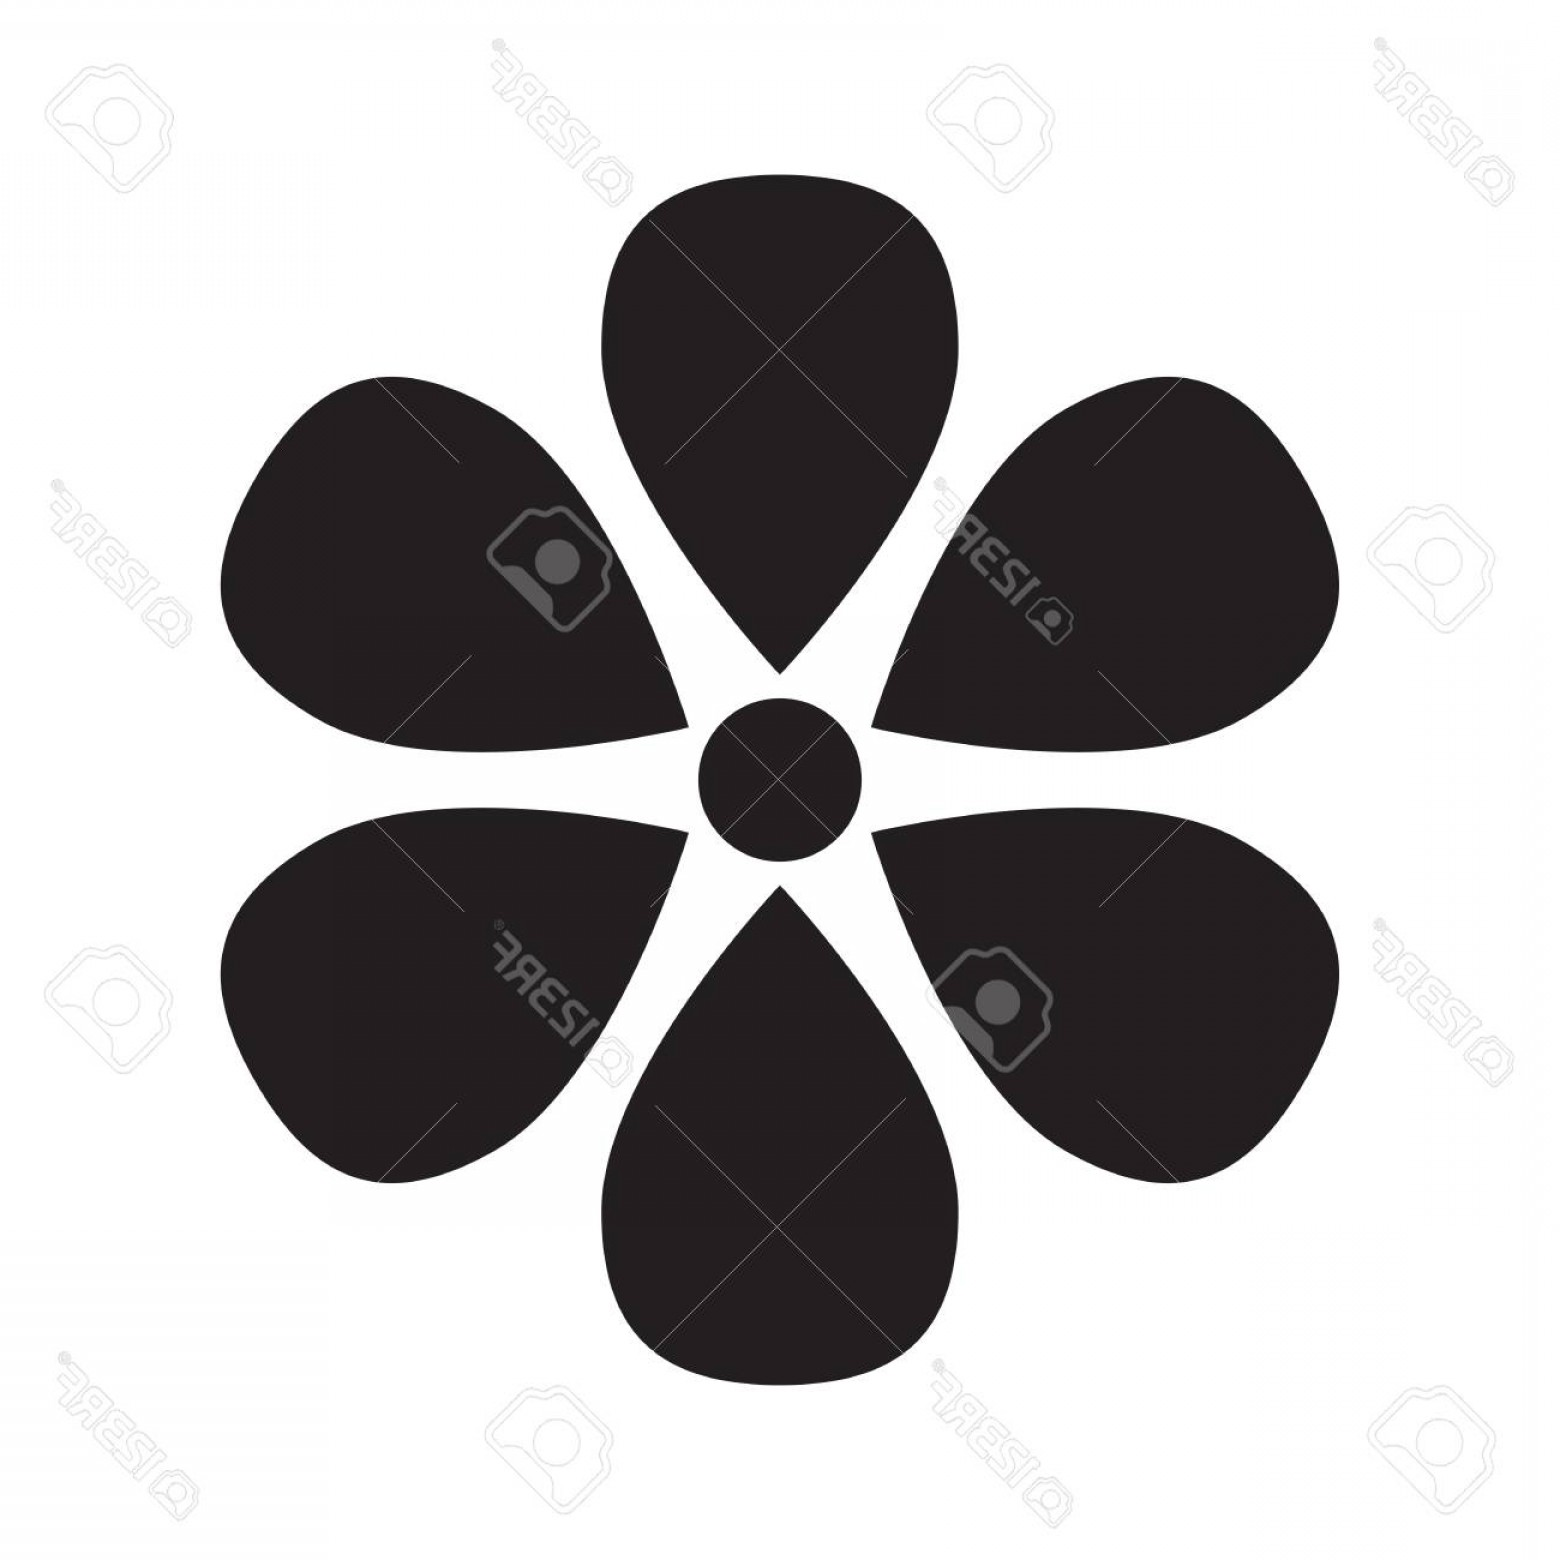 Icon Of Flower Vectors: Photostock Vector Flower Vector Icon Template Pictogram Modern Emblem For Shop Market Internet Decoration Design Trend